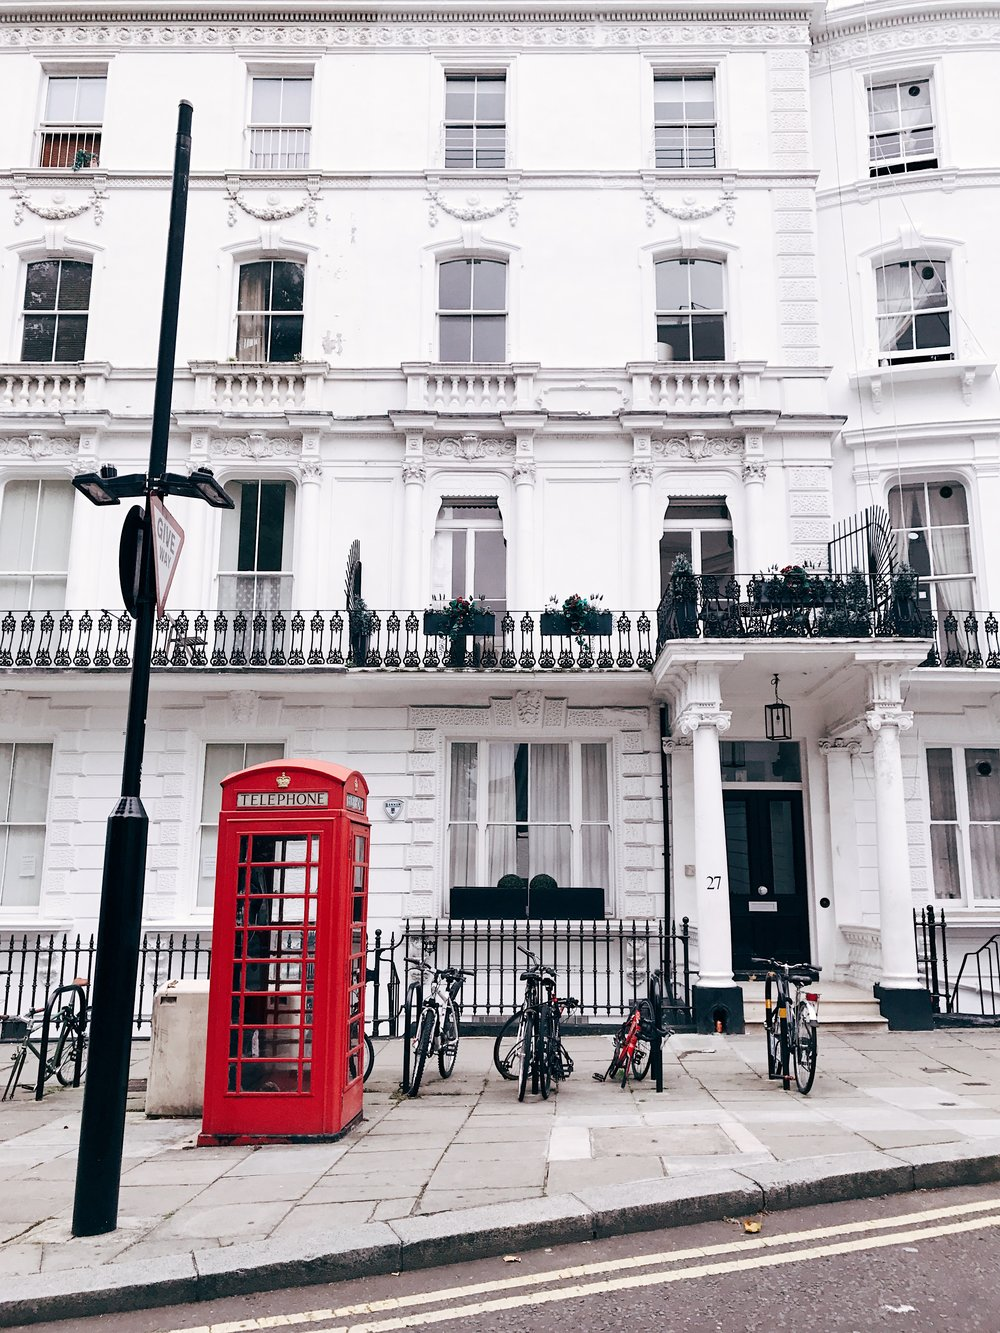 Image: Weekend in London - Telephone Booth - Notting Hill